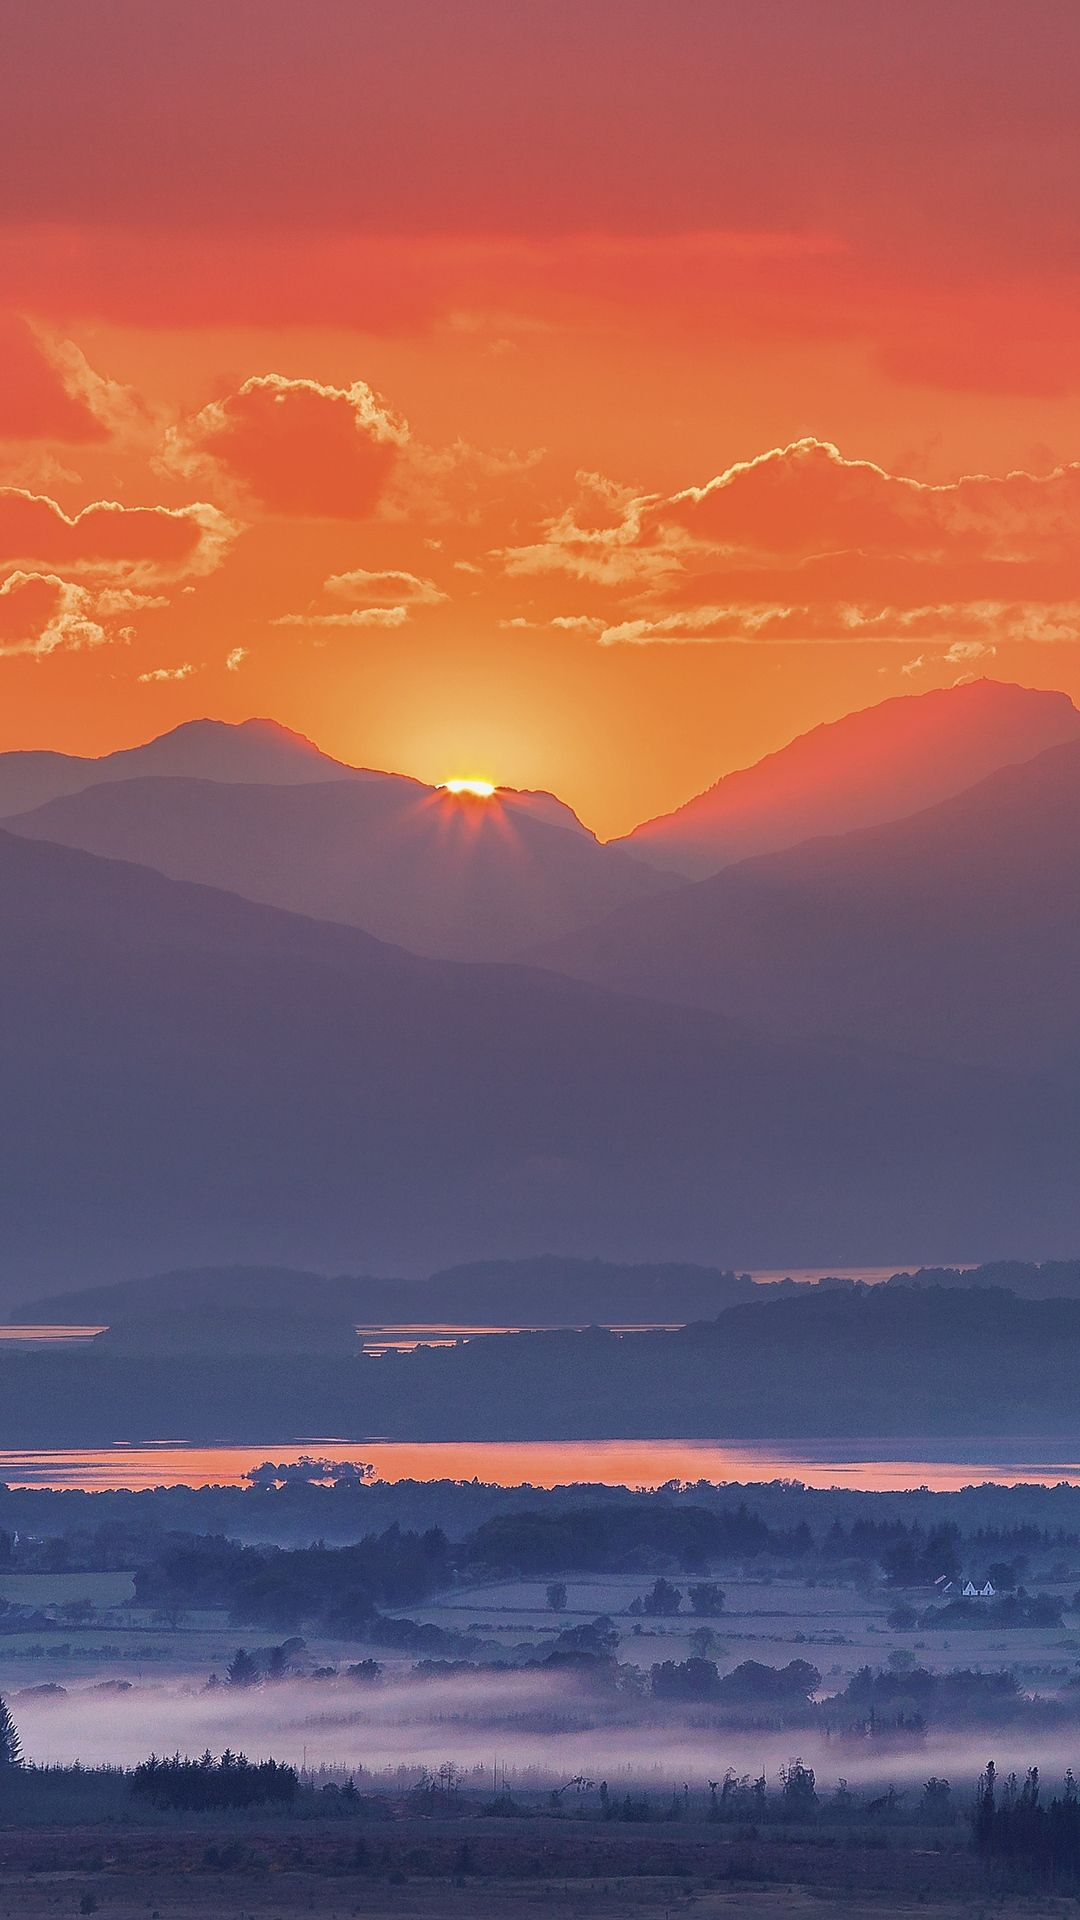 Sunset Mountains Wallpaper Android Download sunset